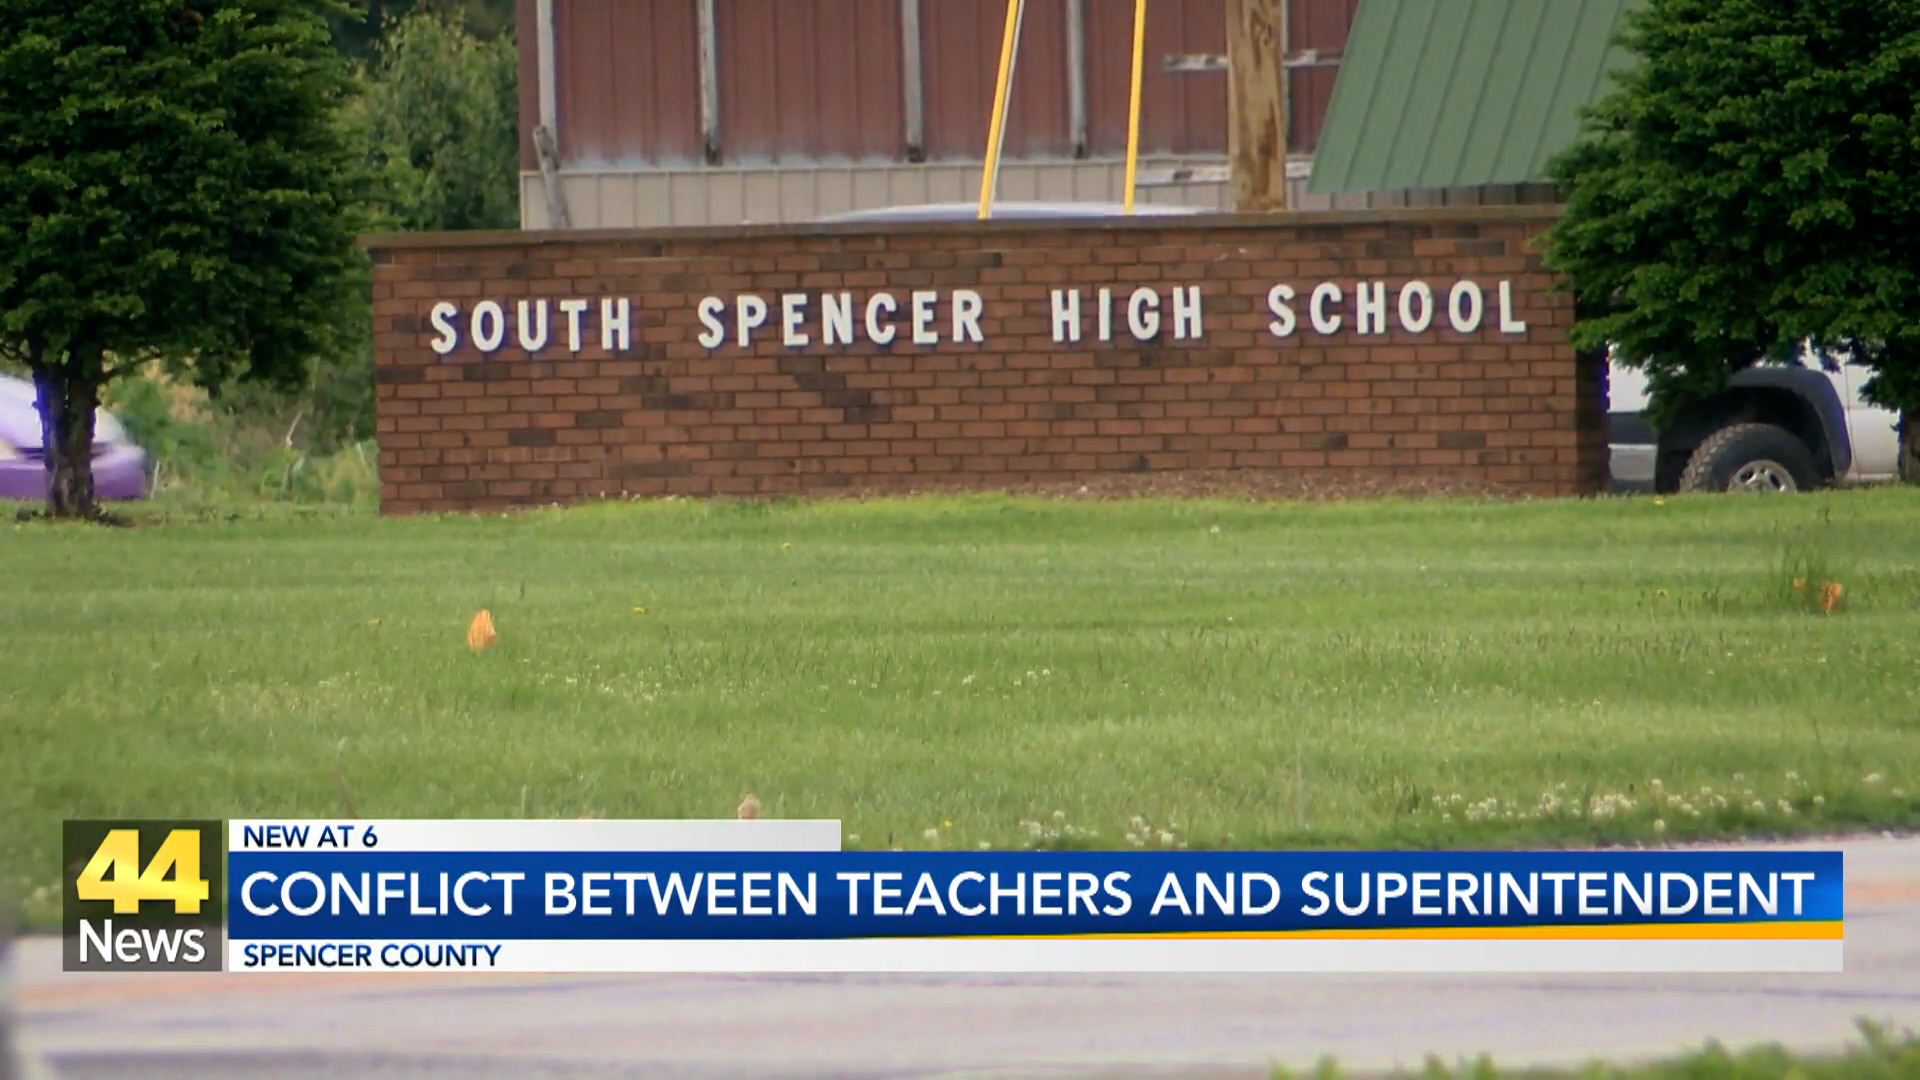 Image for Conflict Between Teachers and Superintendent at South Spencer HS